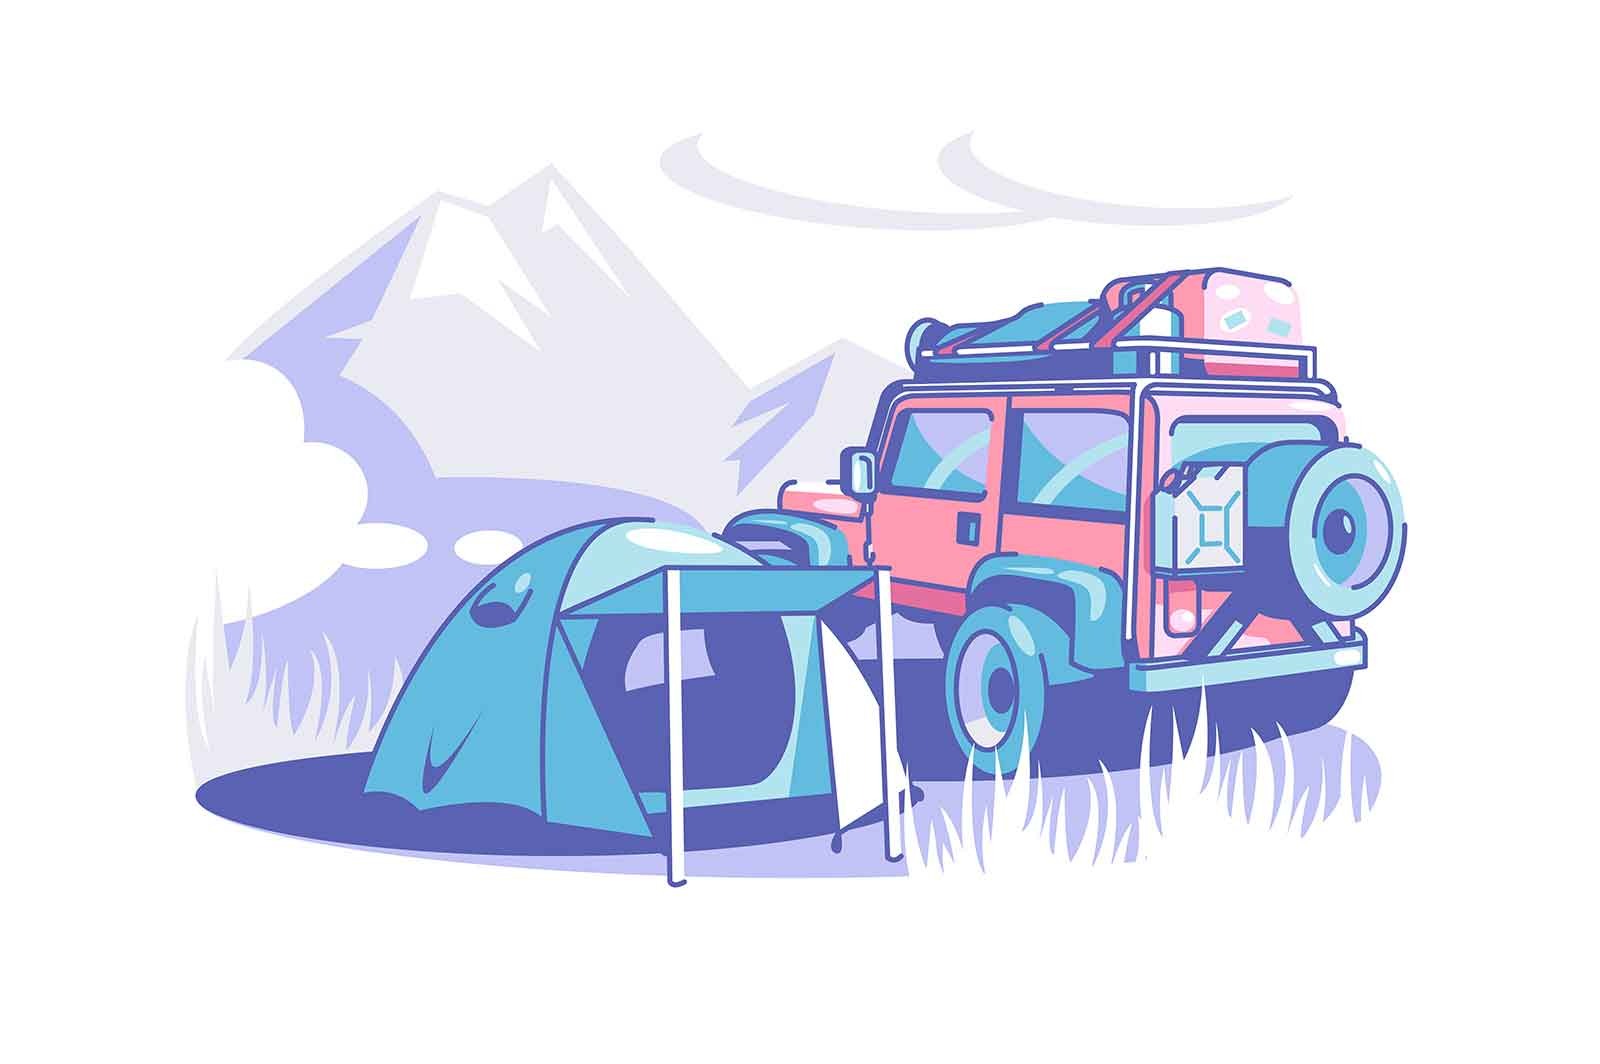 Tourist camp tent and suv vector illustration. Camping adventure, mountain and forest wild nature travel trips flat style. Scout expedition and extreme wilderness exploration hiking club